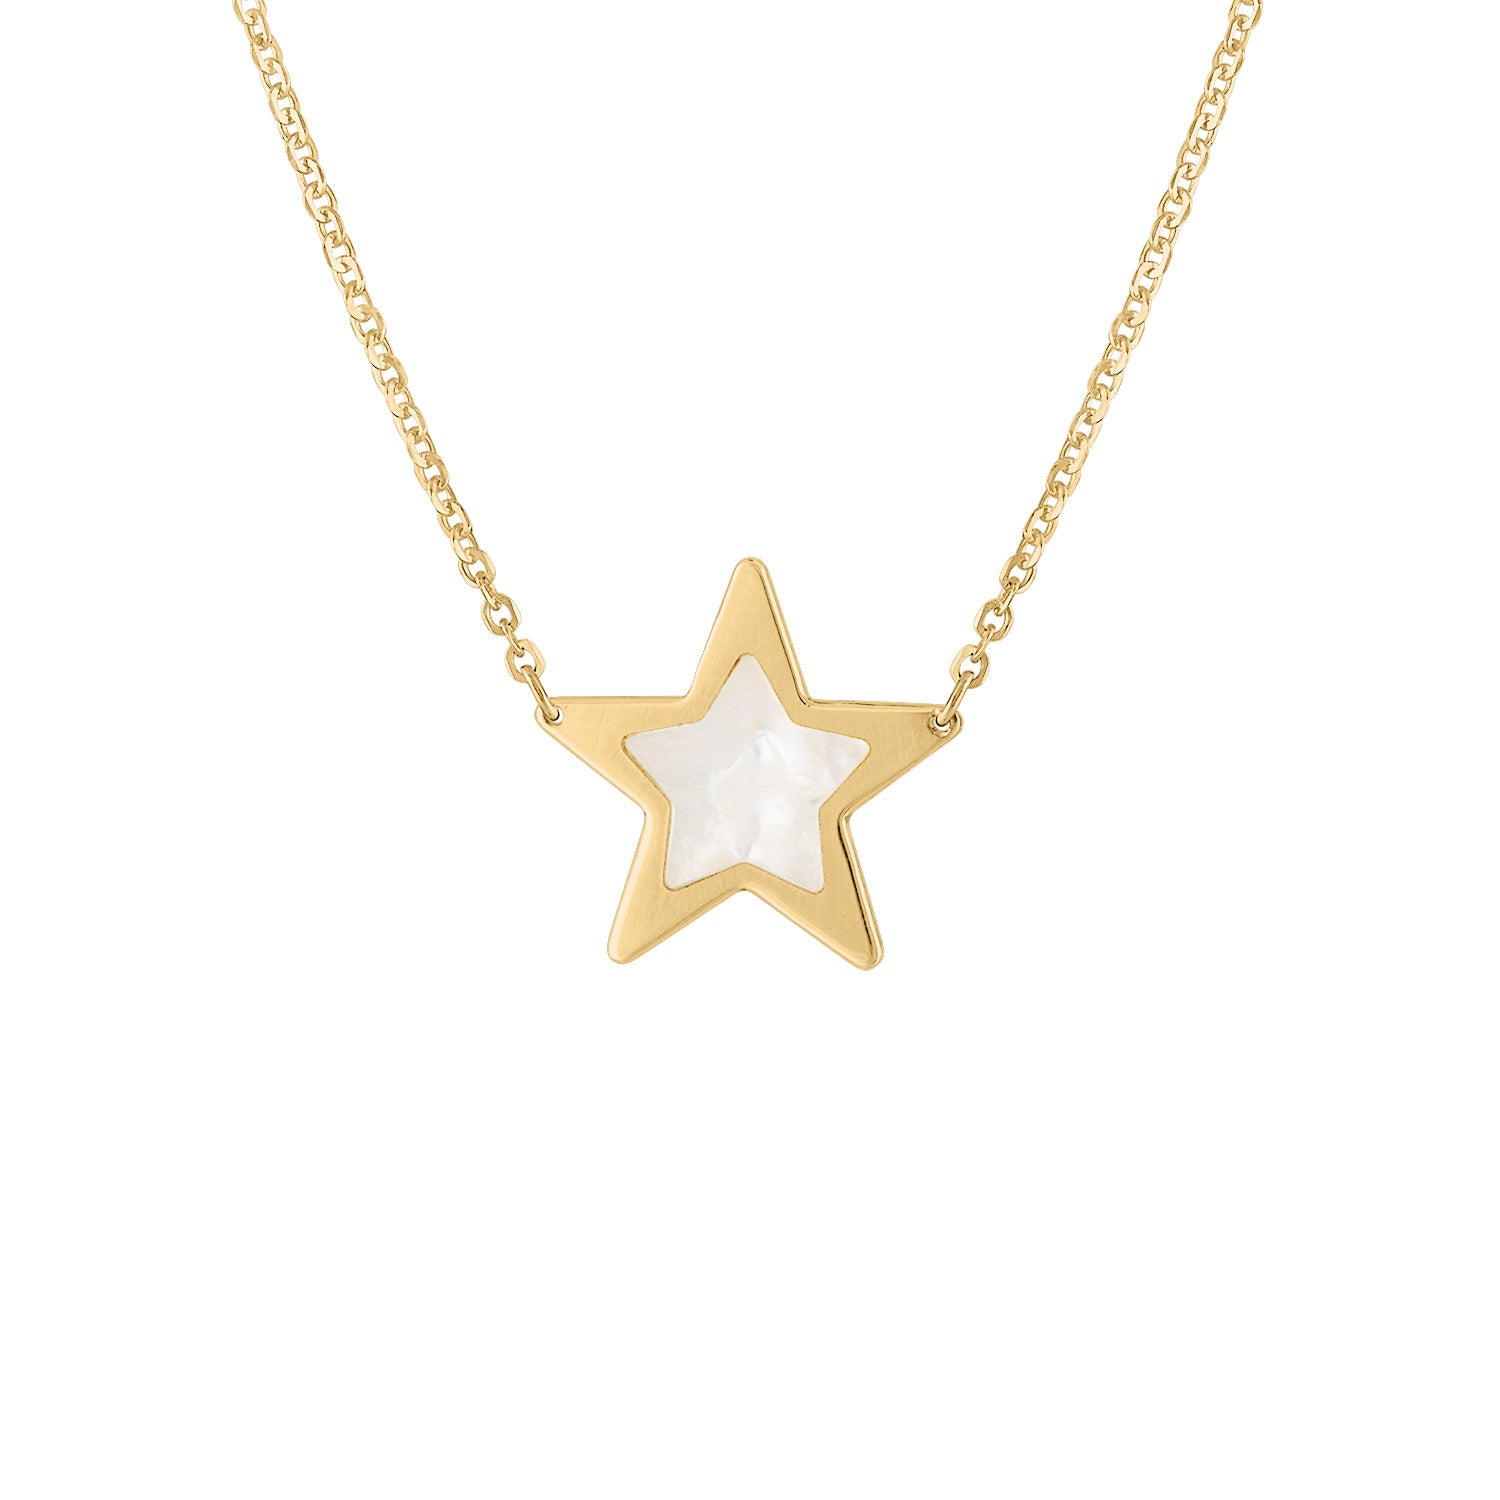 14KT GOLD SMALL MOTHER OF PEARL STAR NECKLACE